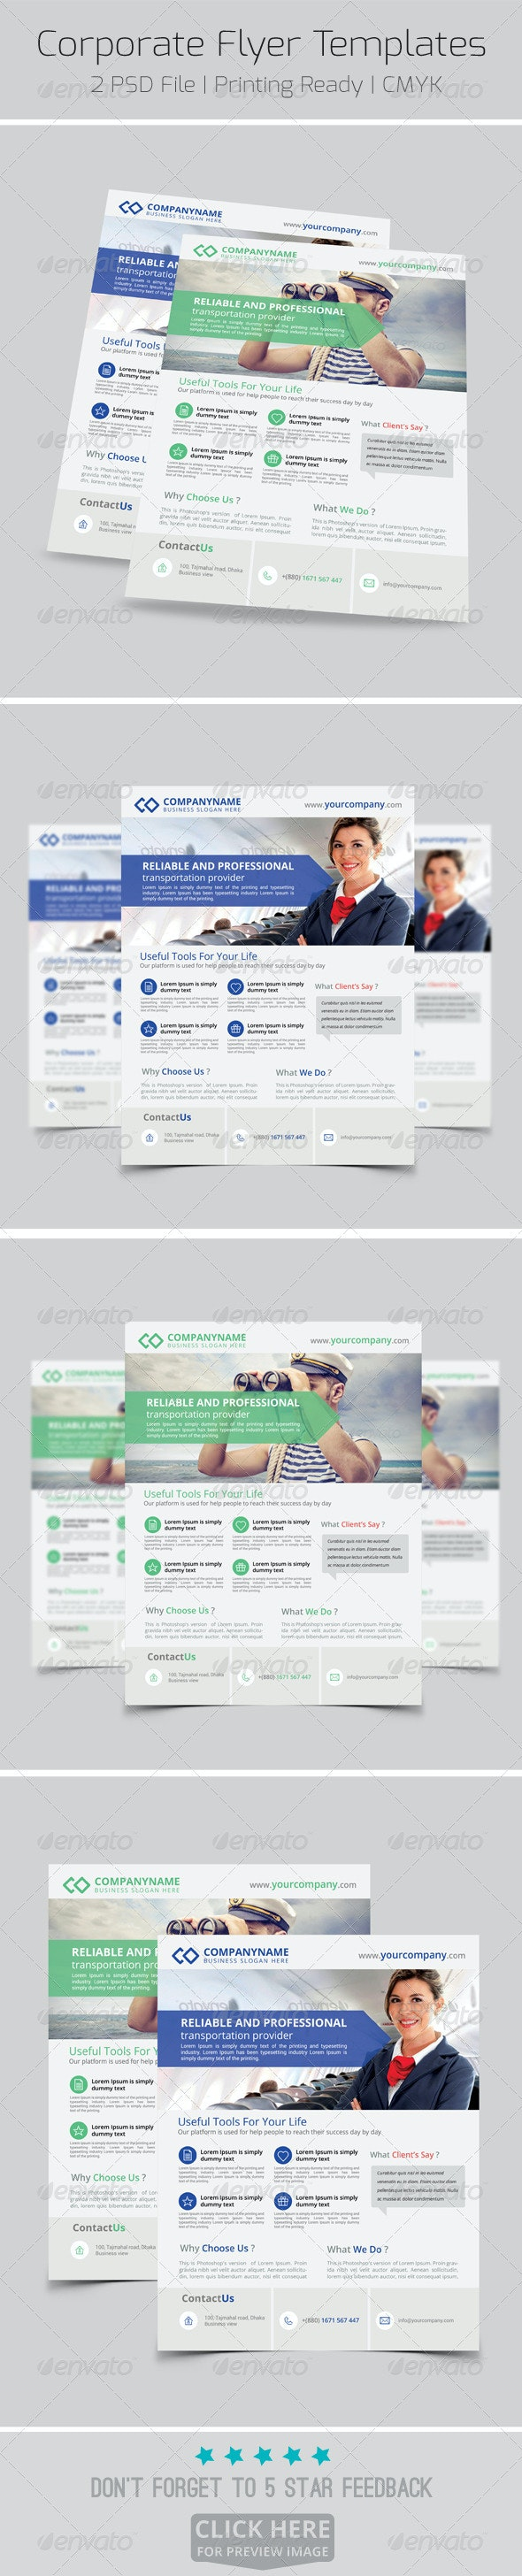 Modern Corporate Flyer Templates - Corporate Flyers